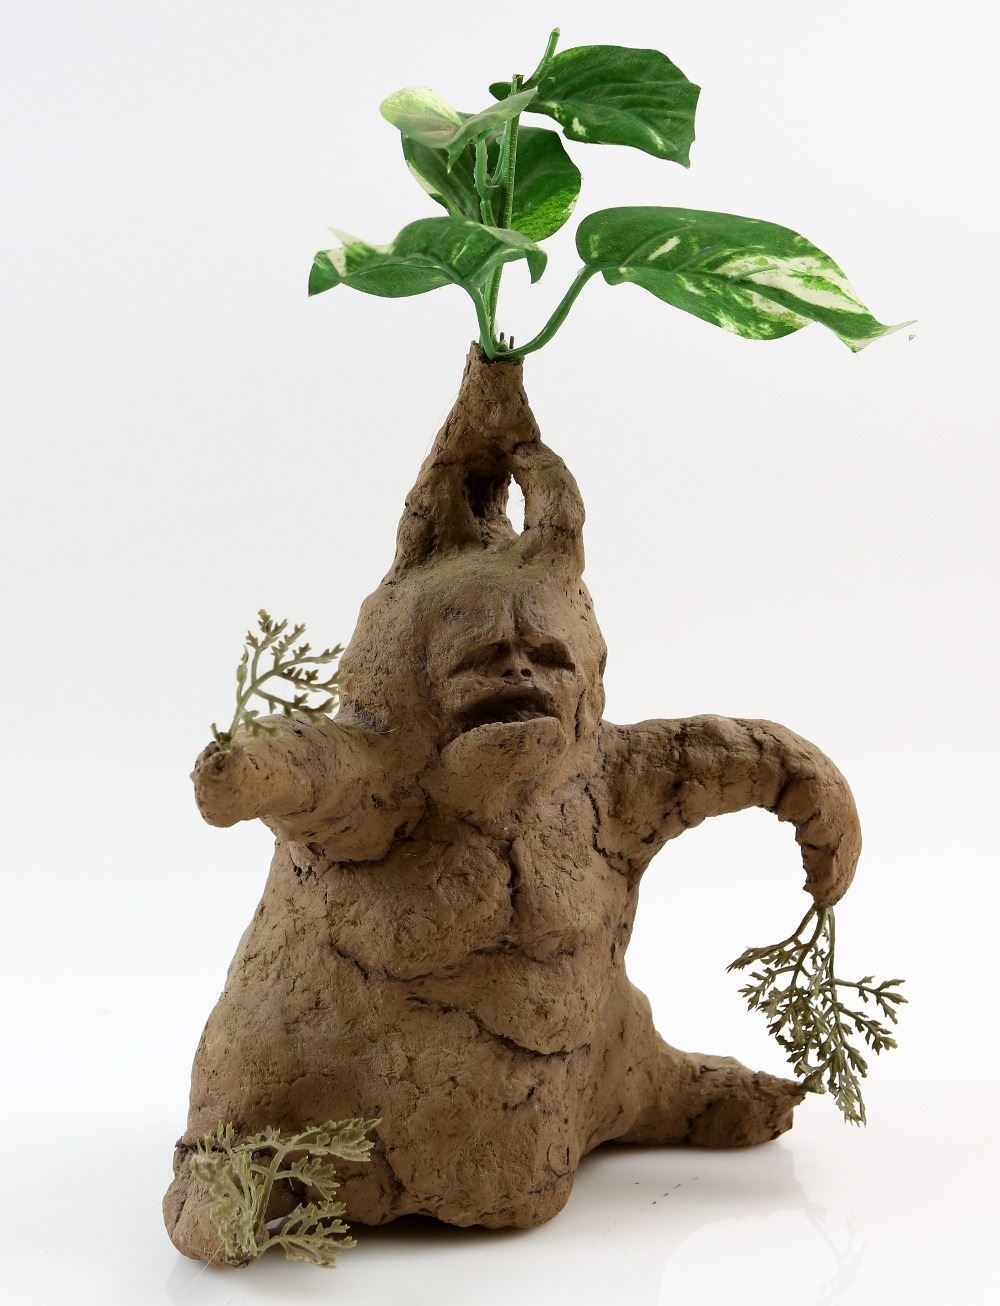 Harry Potter And The Chamber Of Secrets 2002 Mandrake Plant